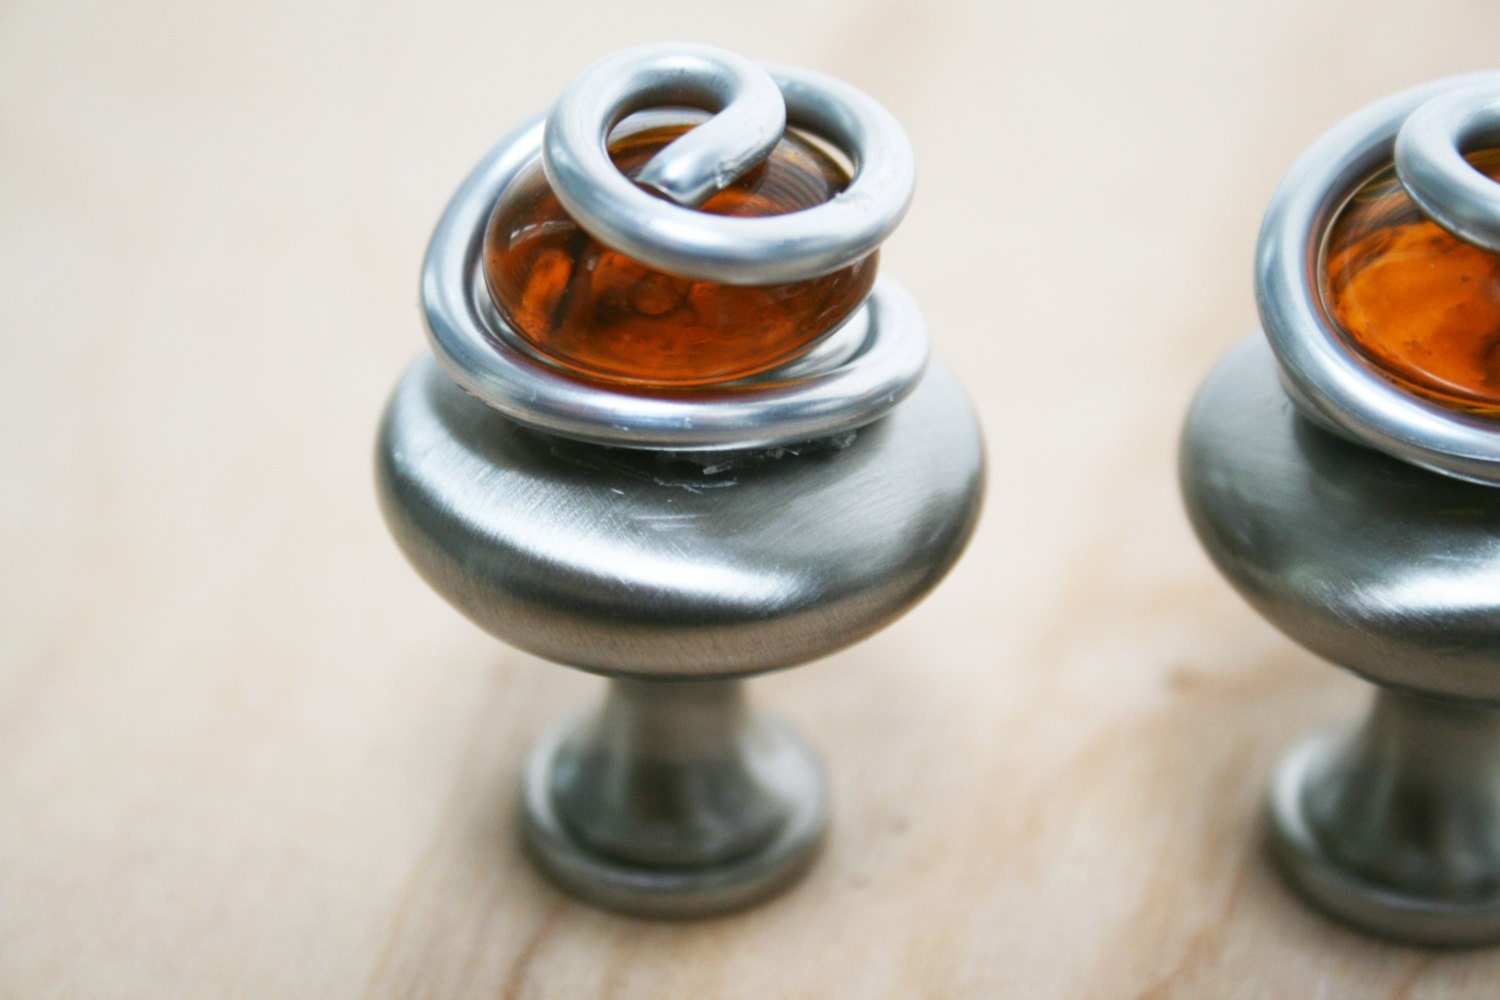 Amber glass cabinet knobs and pull kitchen cabinet knobs furniture handles bathroom cabinet Glass furniture pulls